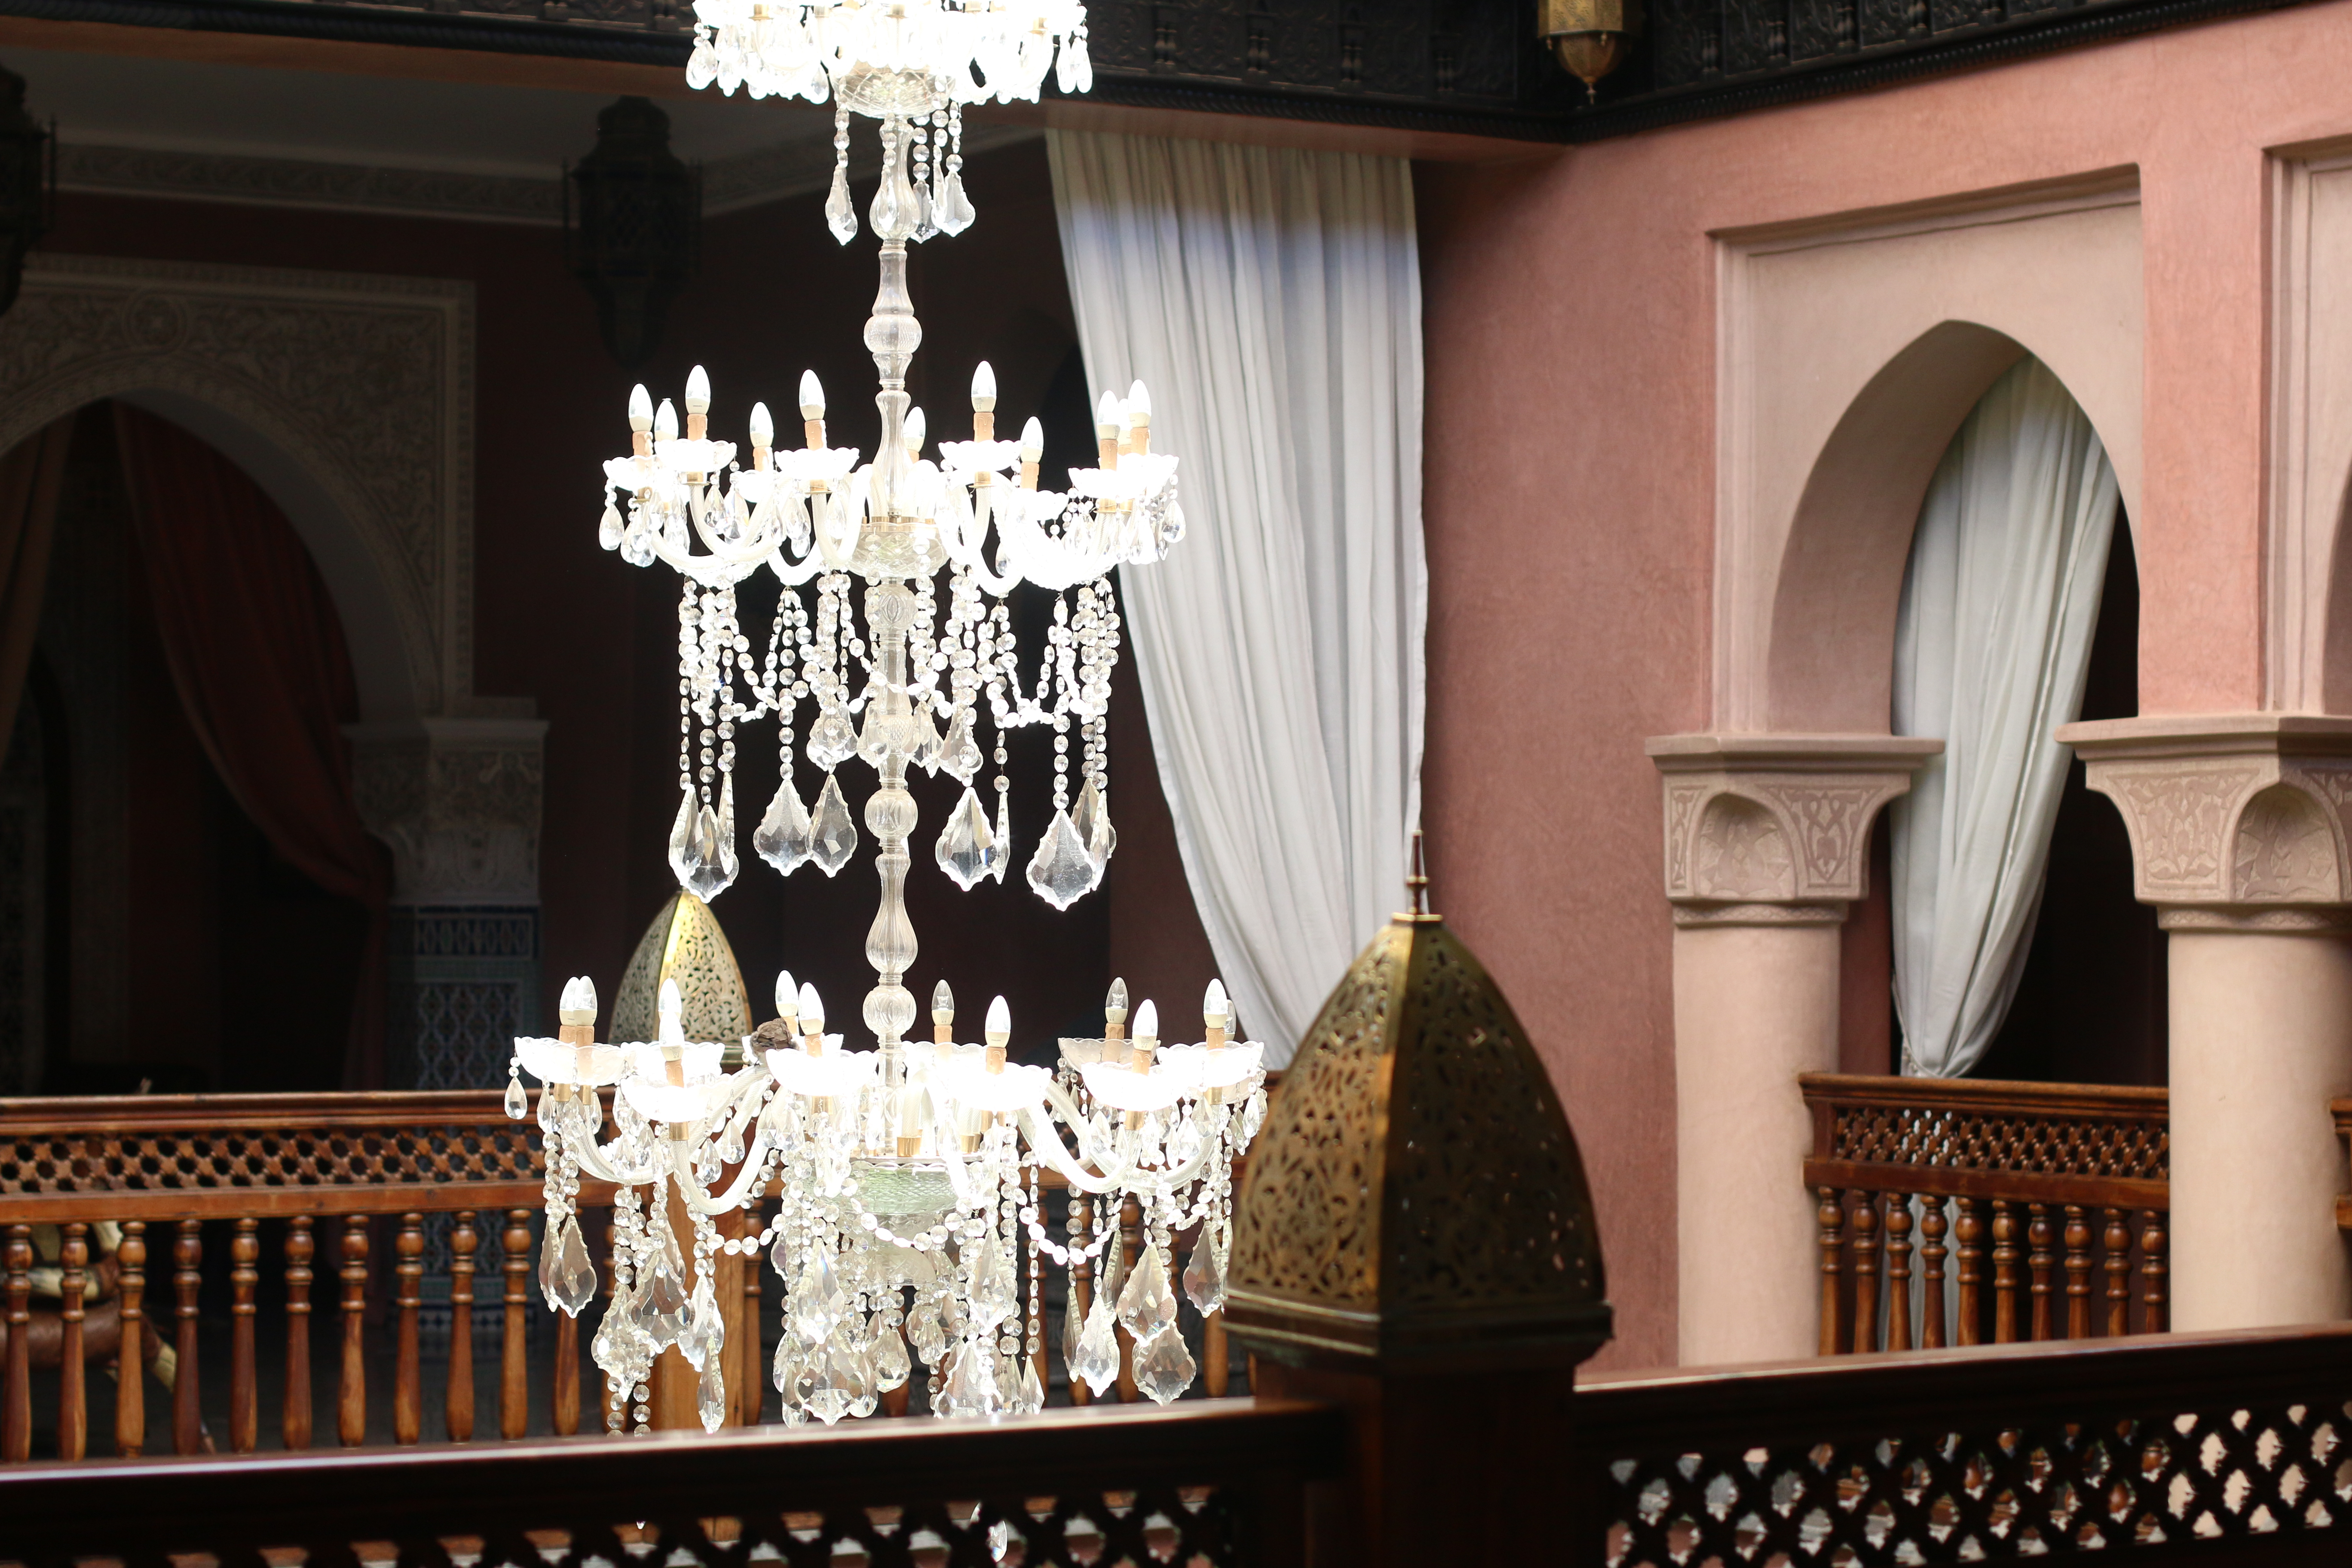 la sultana marrakech marrakesch hotel review travel blog travel guide hotel guide